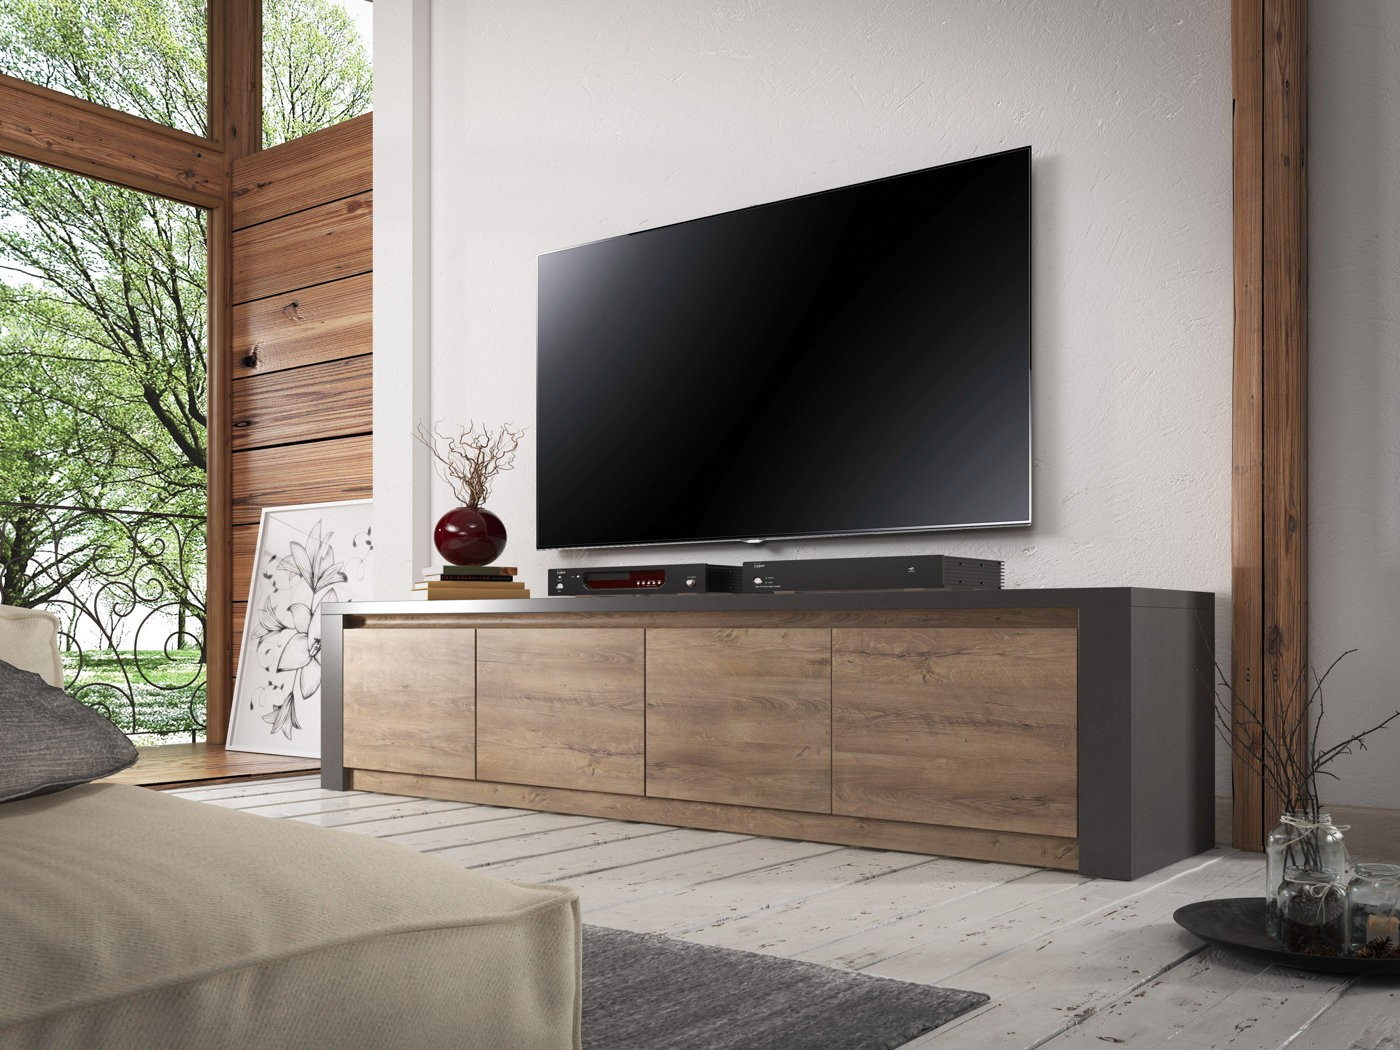 tv meubel monaco eiken grijs 4 vakken 170 cm. Black Bedroom Furniture Sets. Home Design Ideas